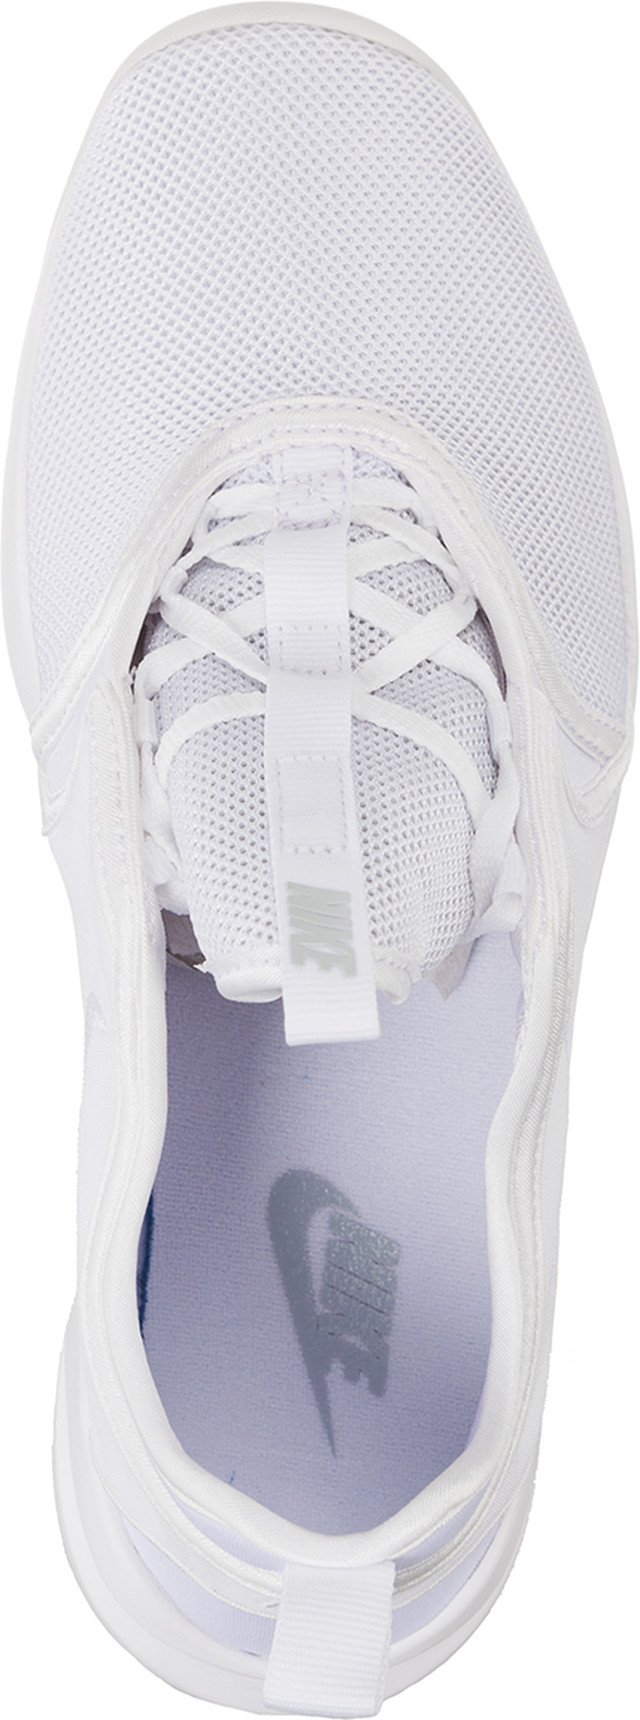 Buty Nike  <br/><small>W LODEN 100 </small>  896298-100